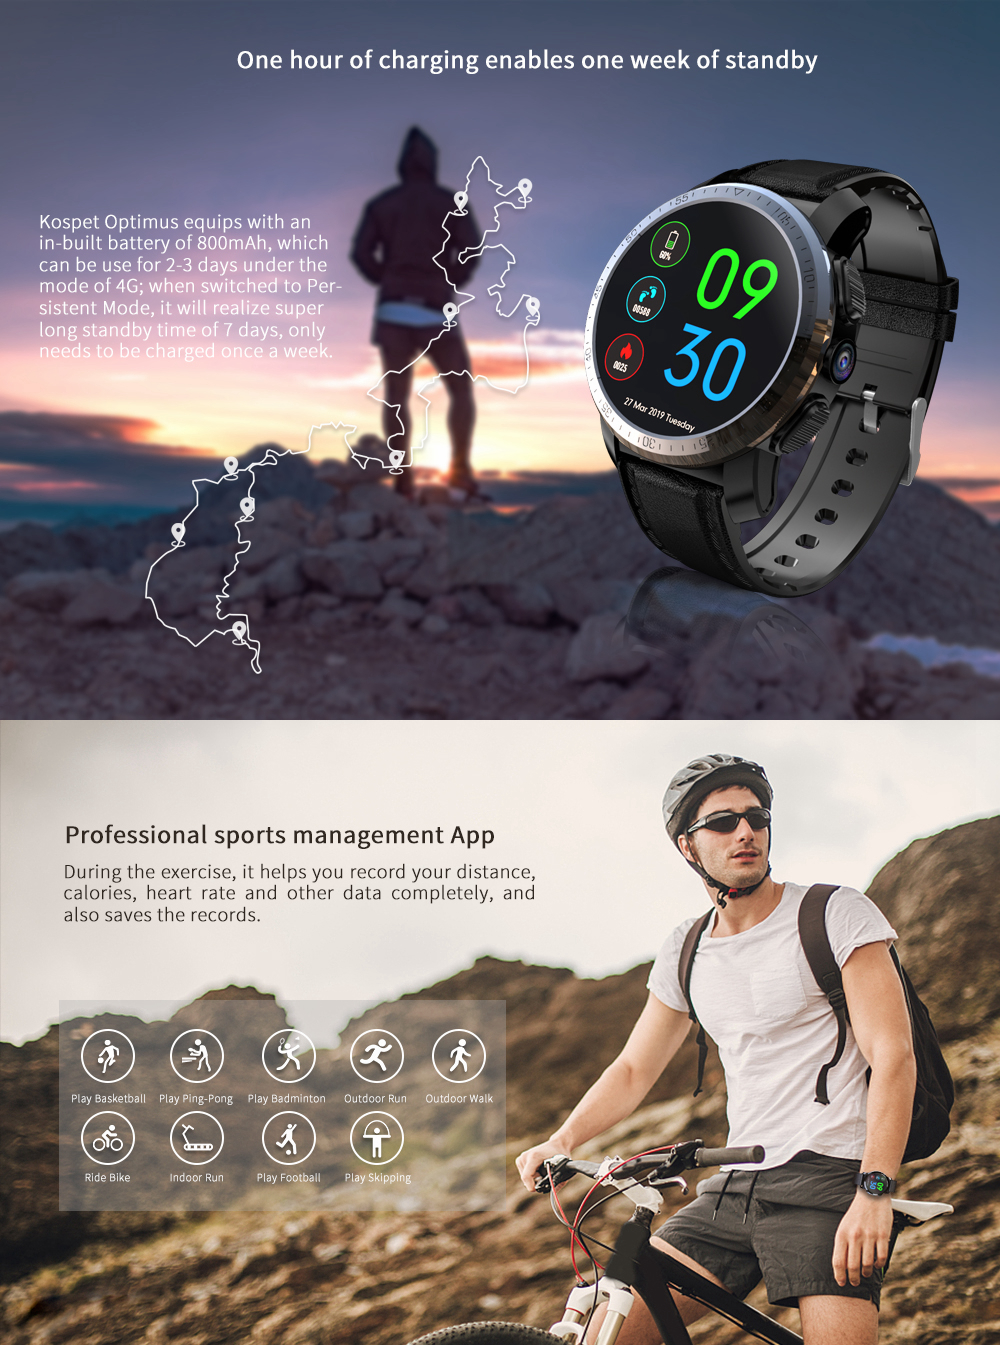 Kospet Optimus Pro Двухчиповая система 3G + 32G 4G-LTE Watch Phone AMOLED 8.0MP 800 мАч GPS Google Play Смарт-часы - фото 9